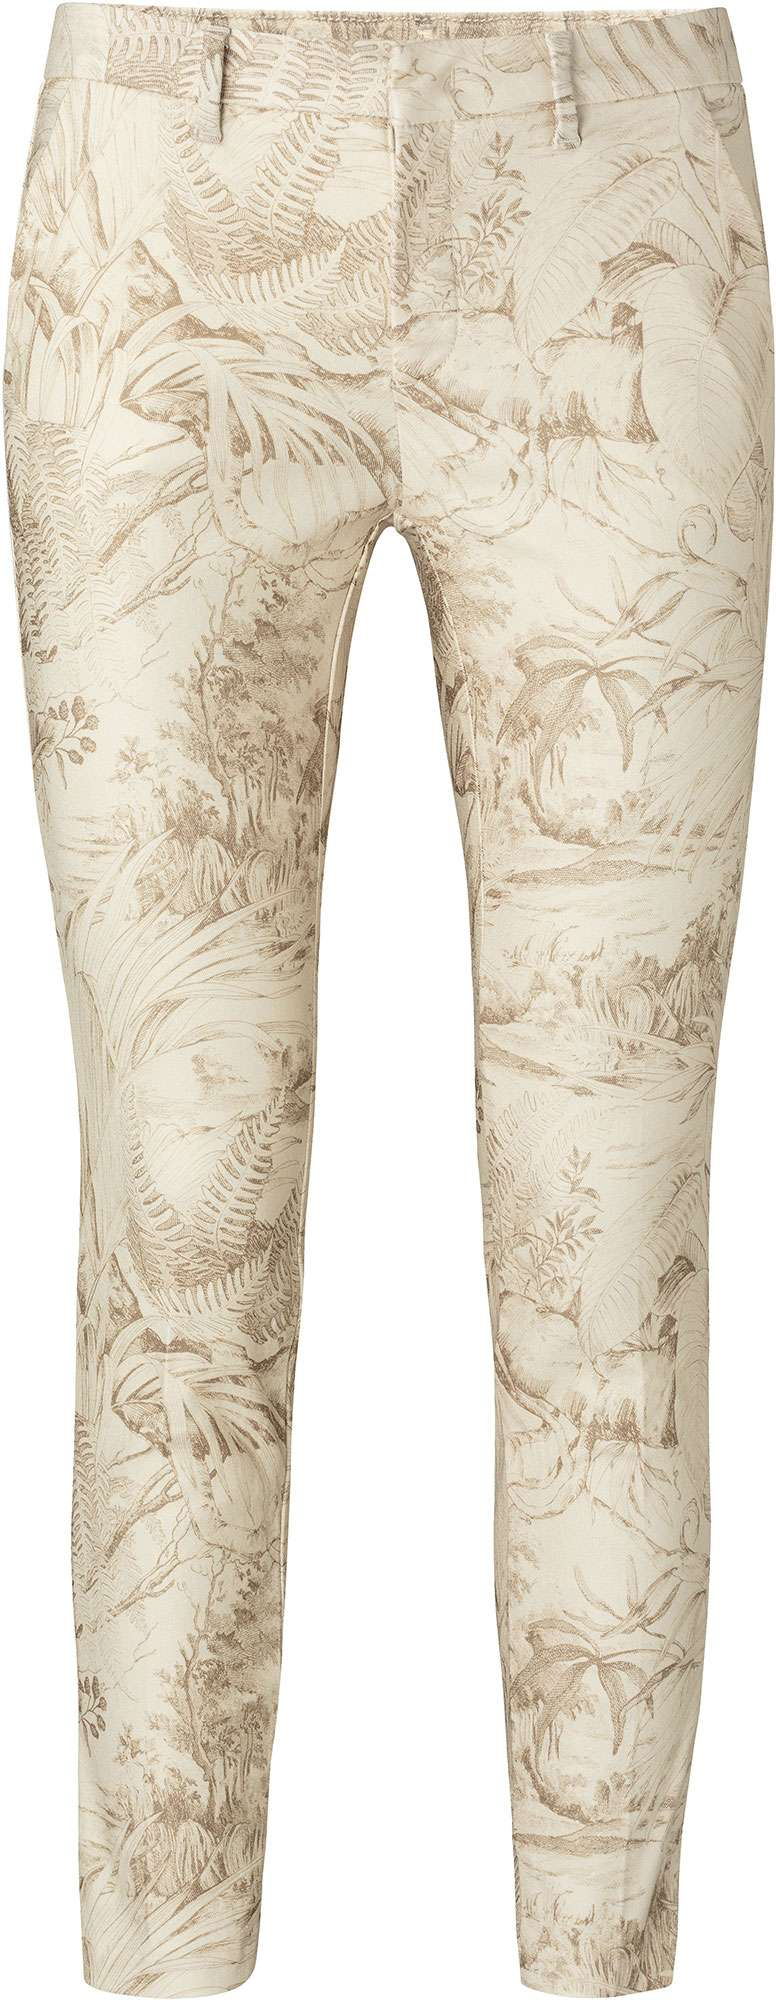 Printed stretch trousers oat dessin